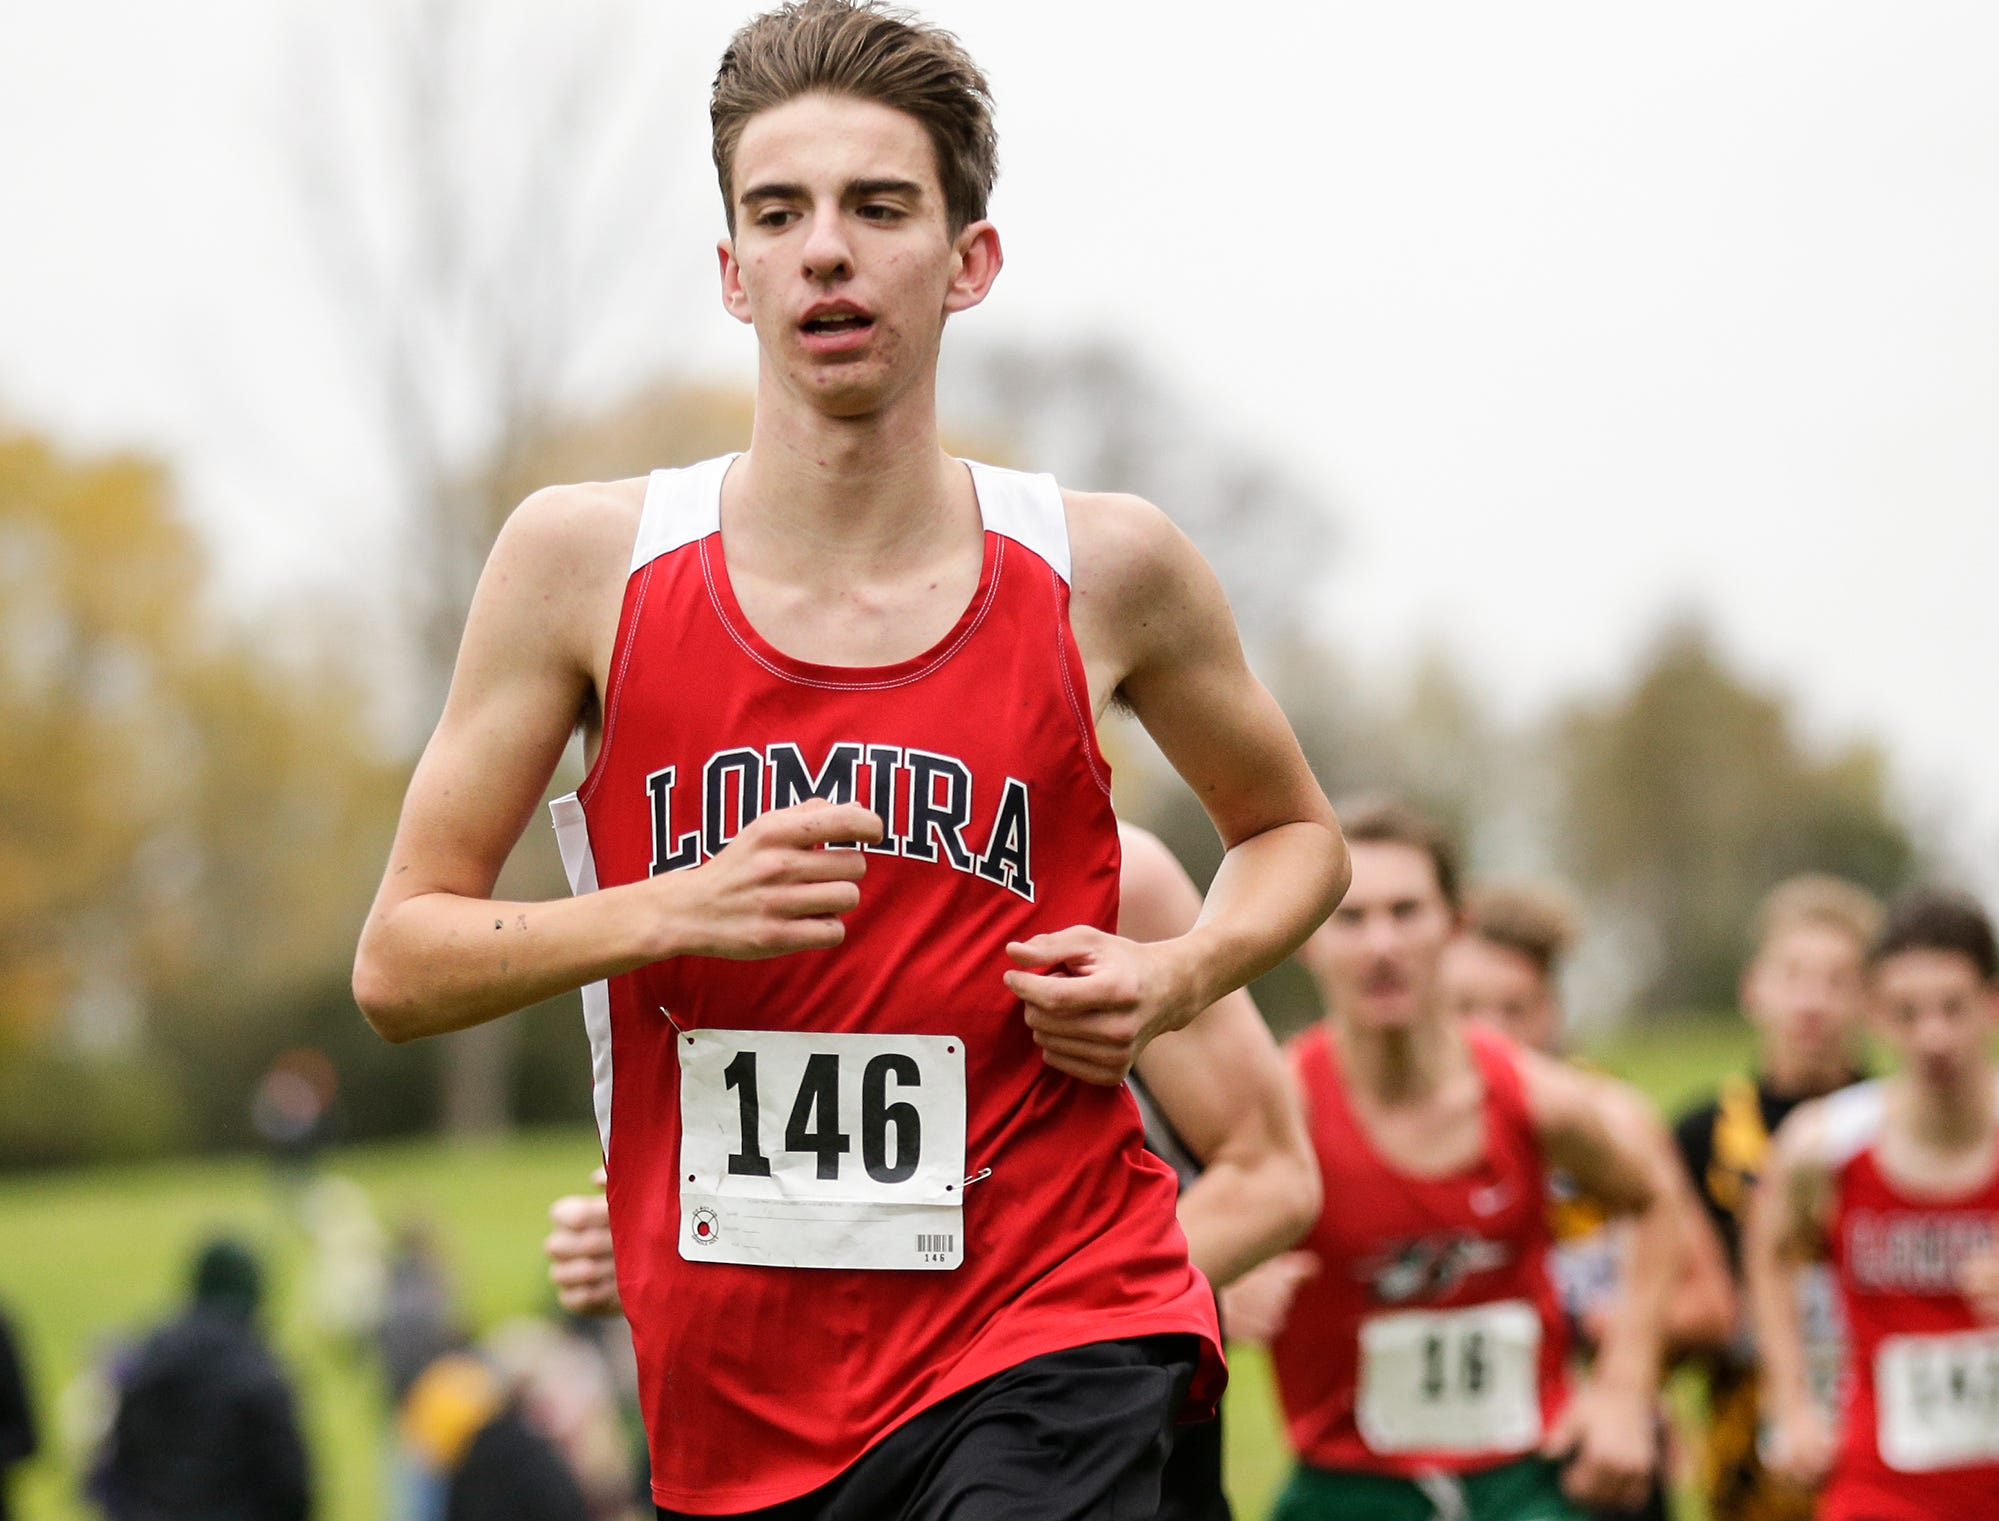 Lomira High School's Brendan Schraufnagel runs in the WIAA Division two Mayville sectional cross country meet at the Mayville golf course Friday, October 19, 2018. Doug Raflik/USA TODAY NETWORK-Wisconsin